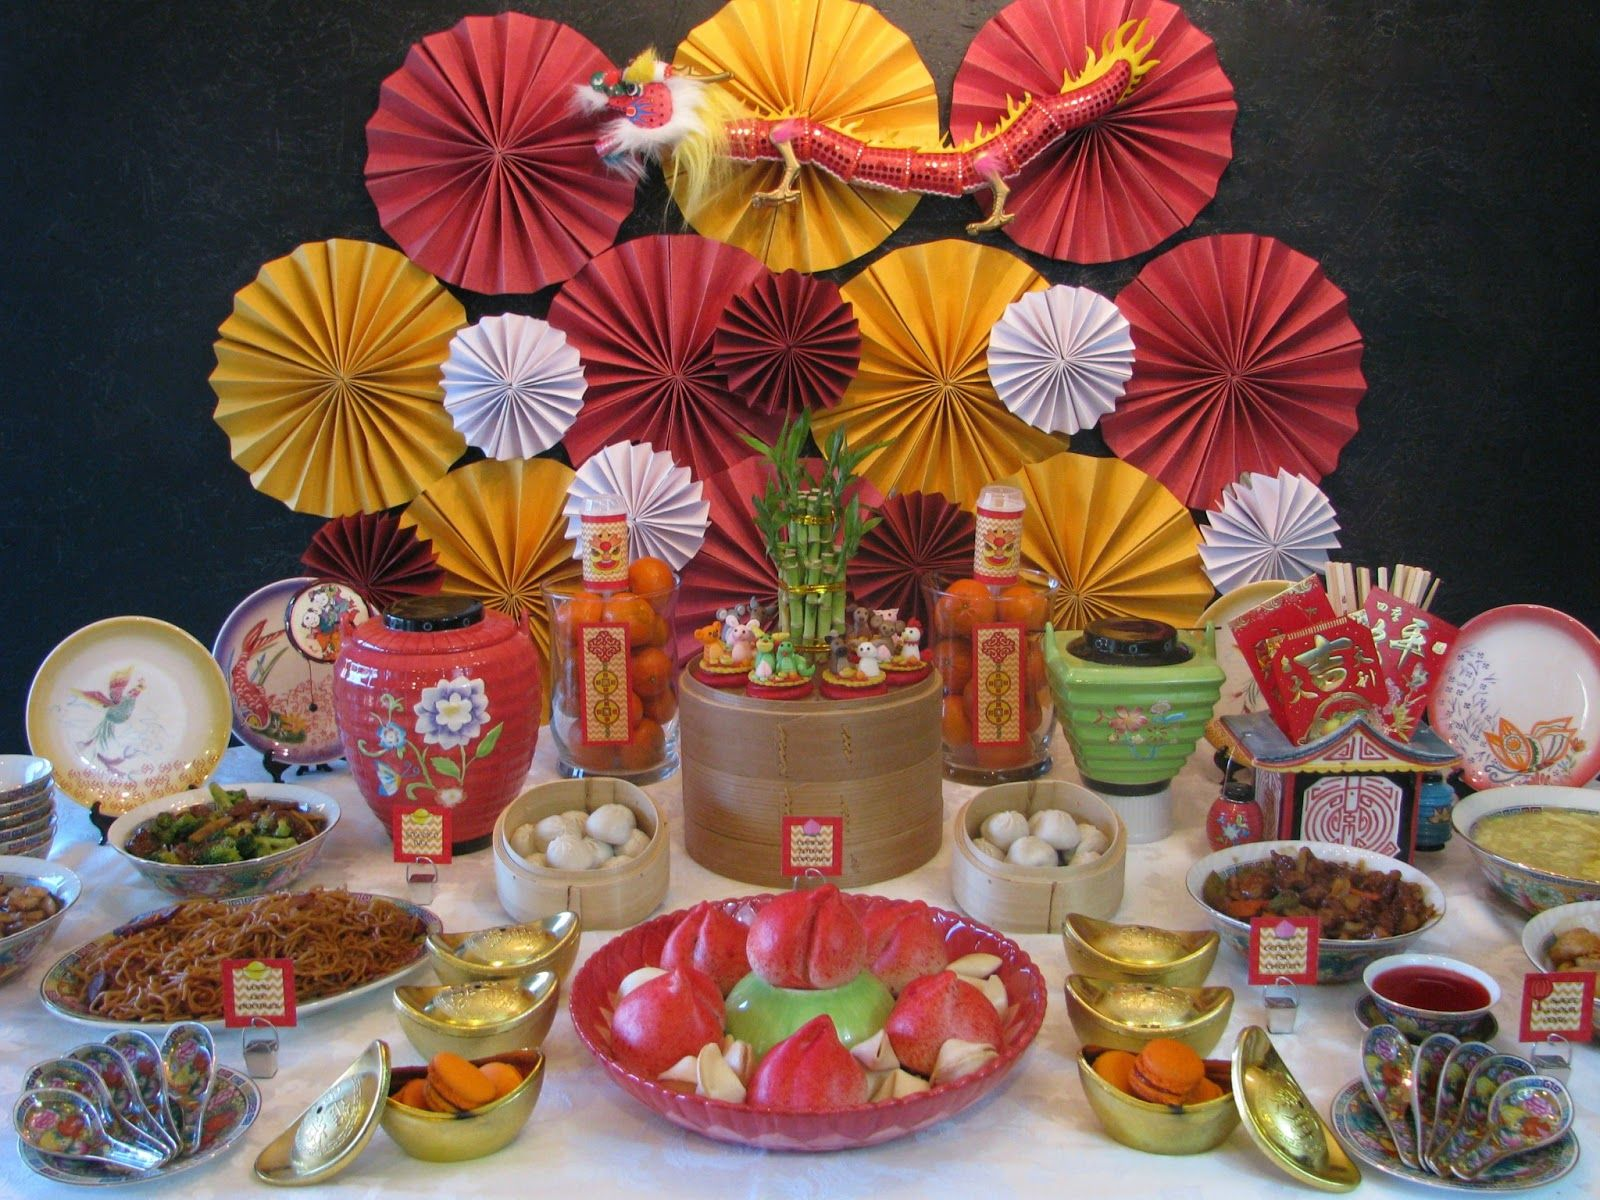 Chinese new year treats table set up Lunar Harvest/Yum